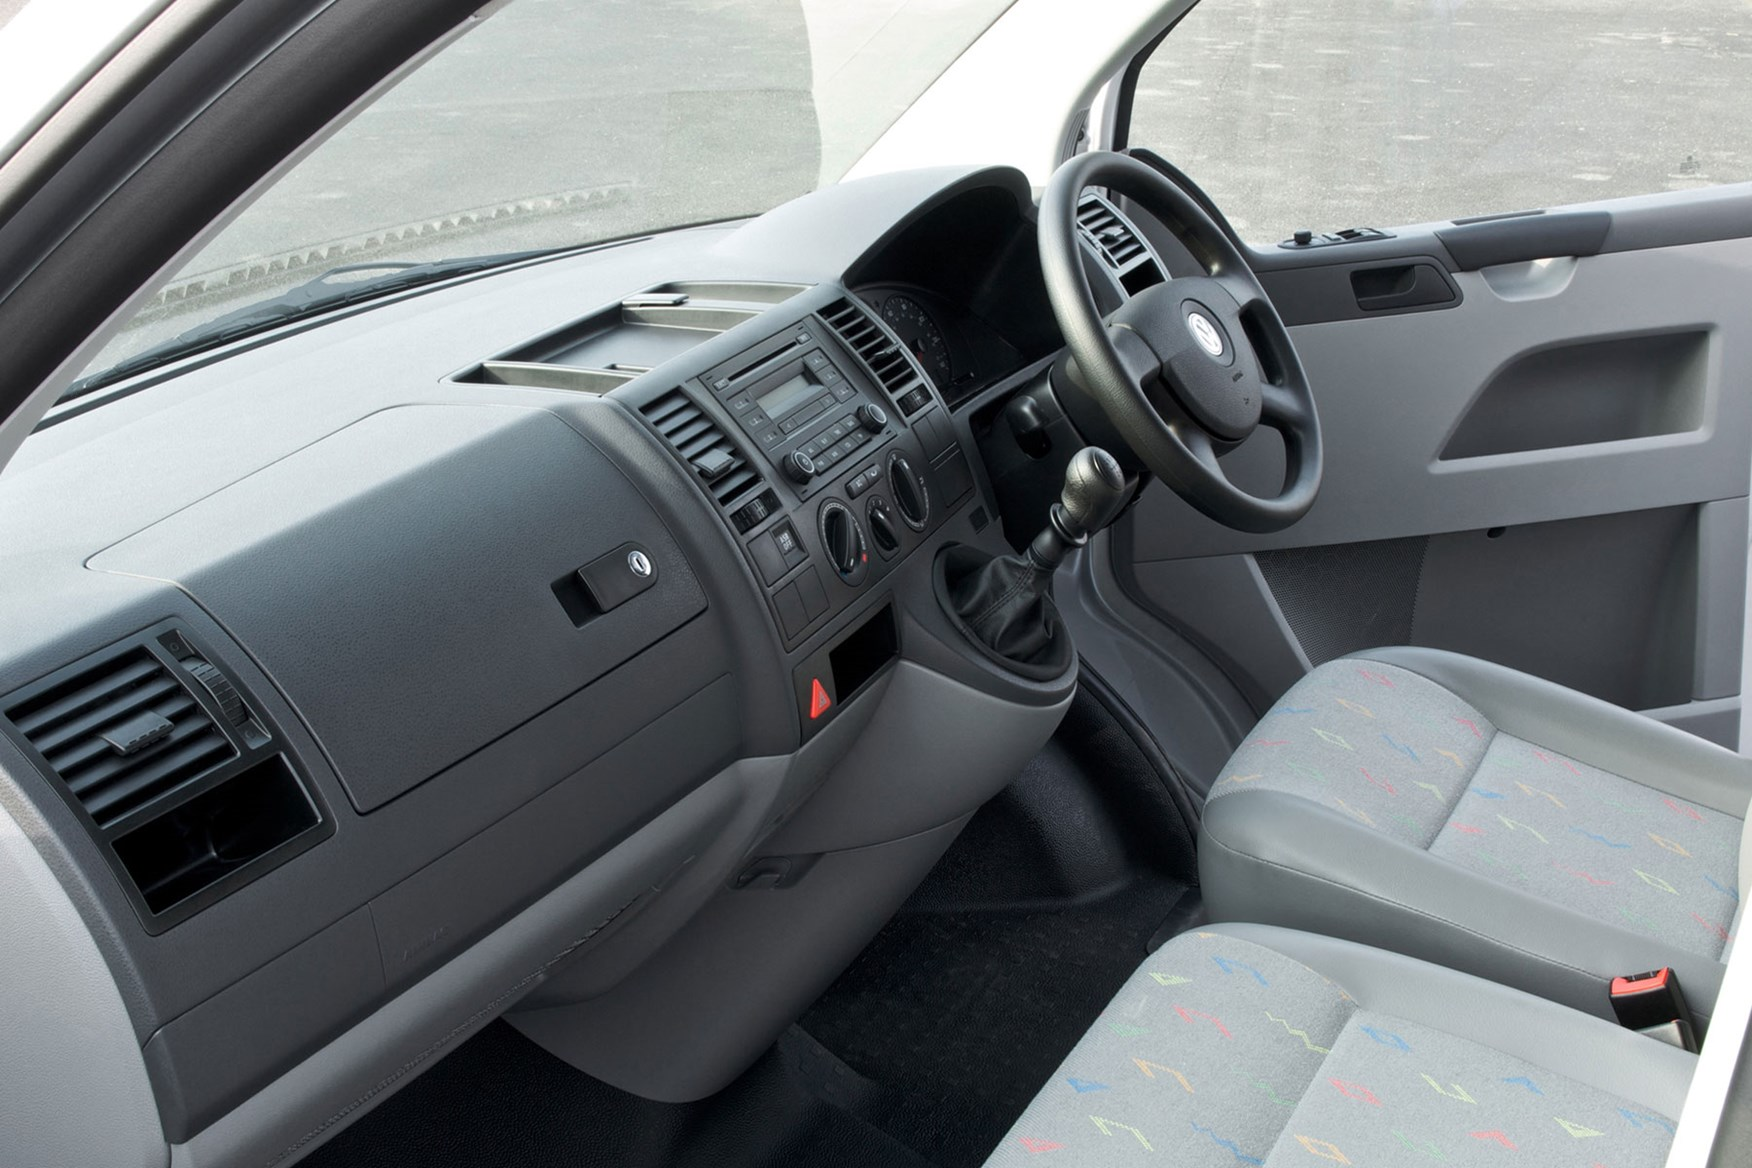 VW Transporter T5 (2003-2010) safety and security